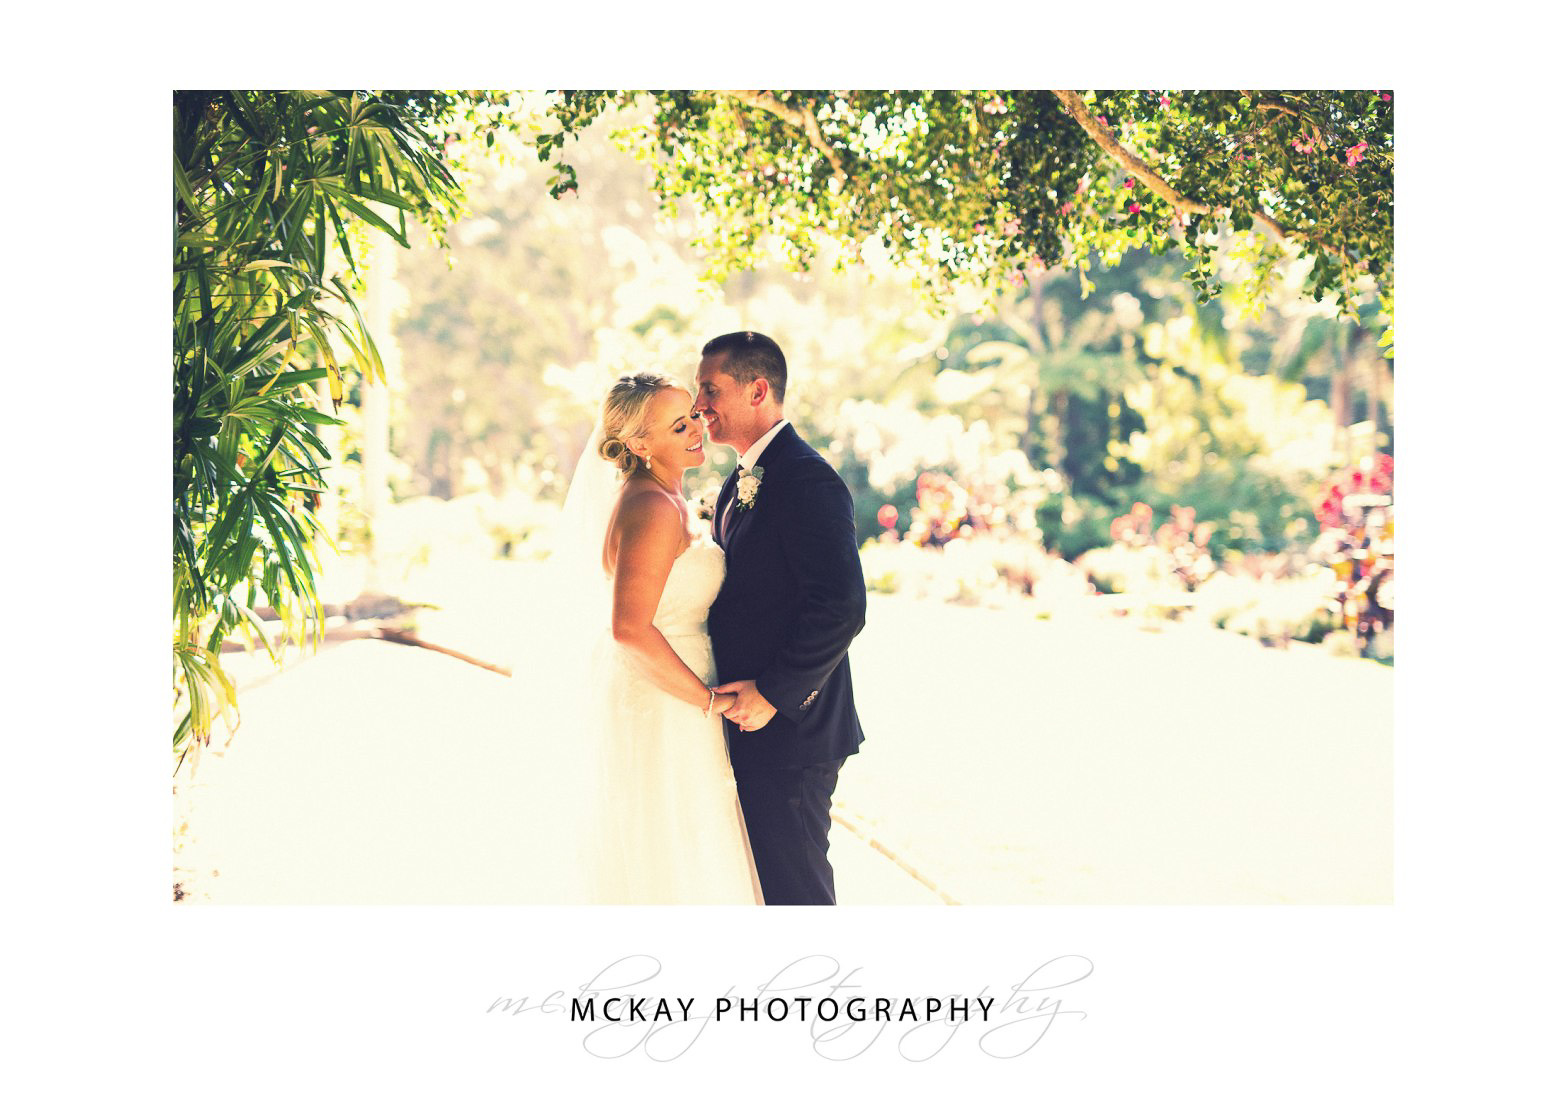 backlit photo of bride and groom at Vaucluse House